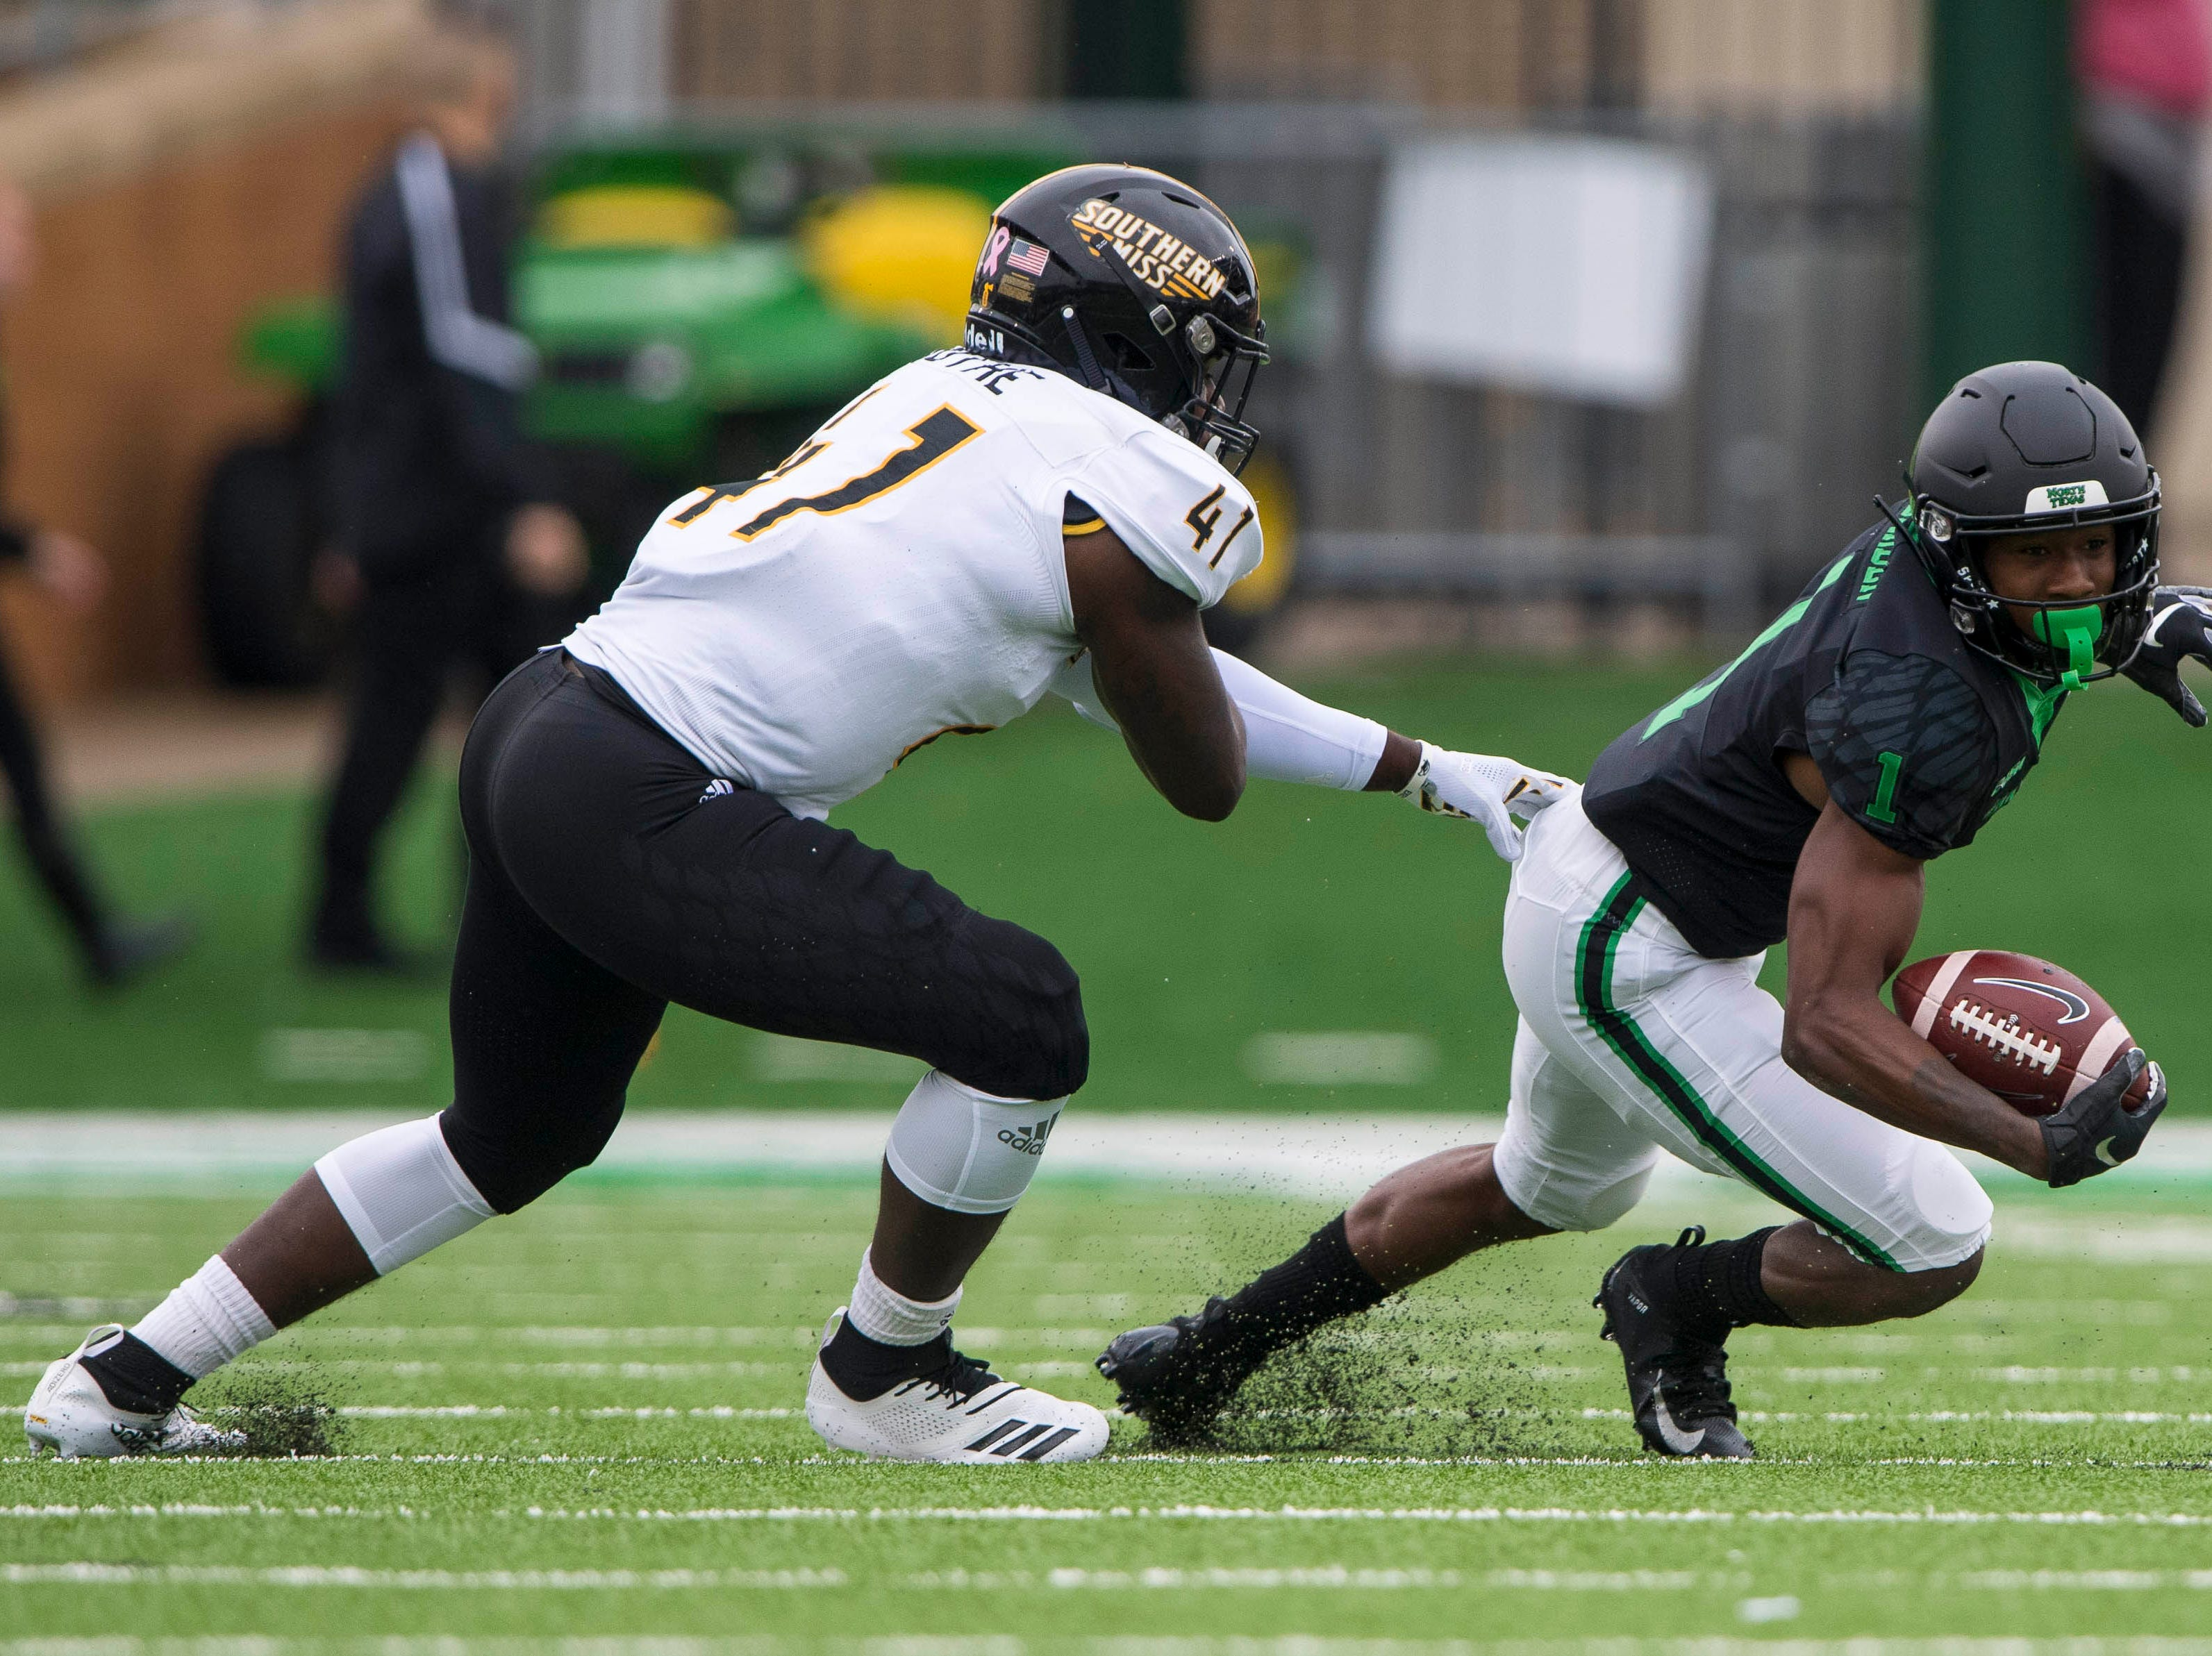 Oct 13, 2018; Denton, TX, USA; North Texas Mean Green wide receiver Jaelon Darden (1) tries to elude Southern Miss Golden Eagles linebacker Racheem Boothe (41) during the first half at Apogee Stadium.